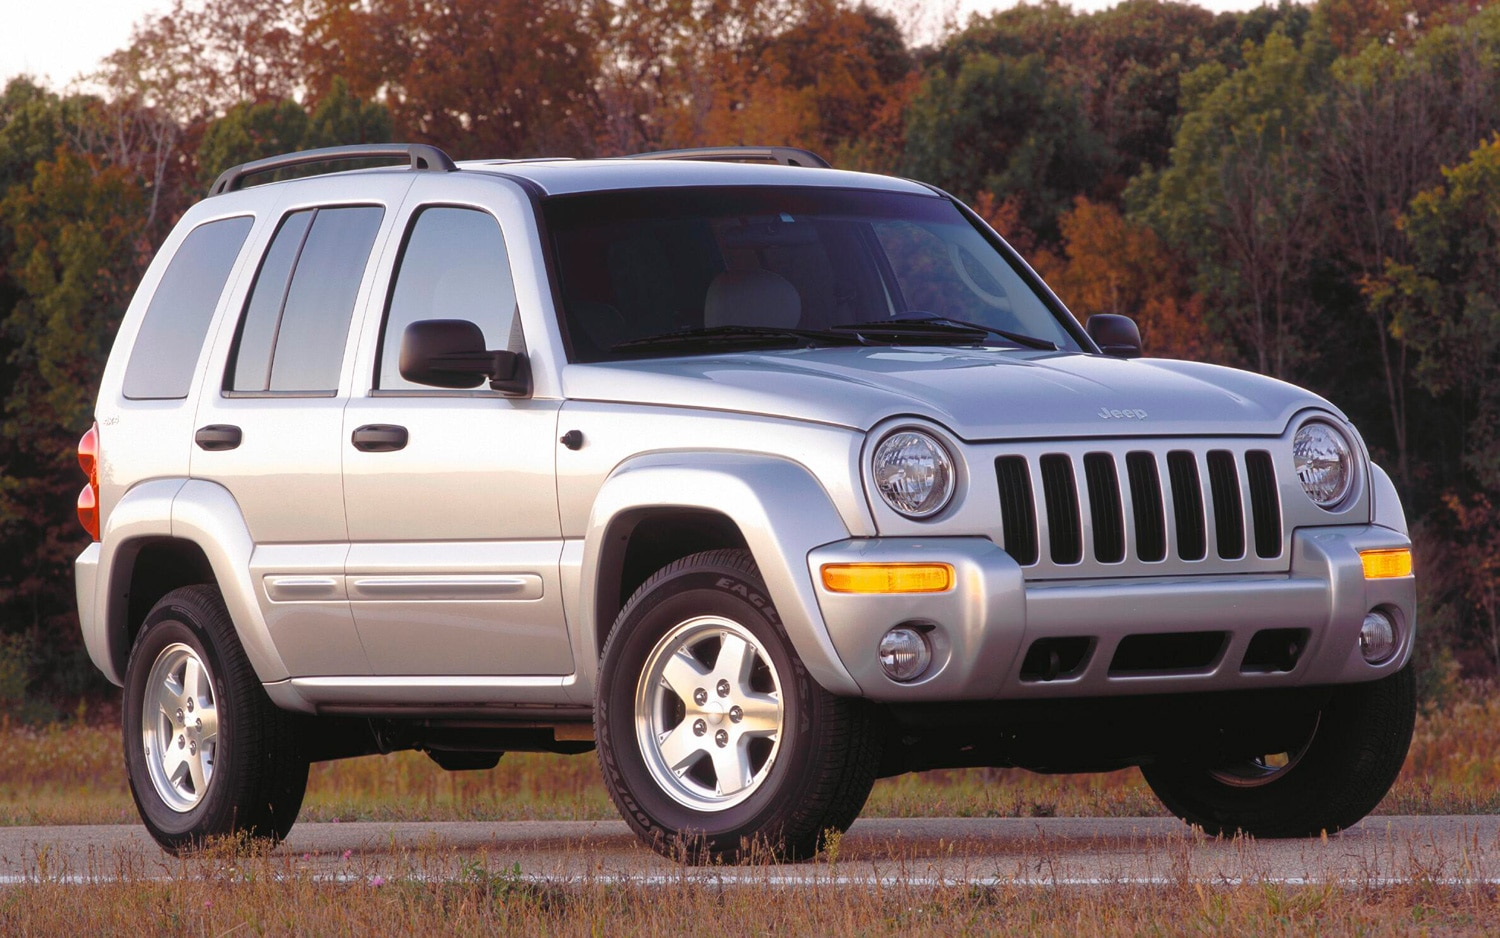 recall central jeep recalls 745 000 grand cherokee liberty models over airbags. Black Bedroom Furniture Sets. Home Design Ideas